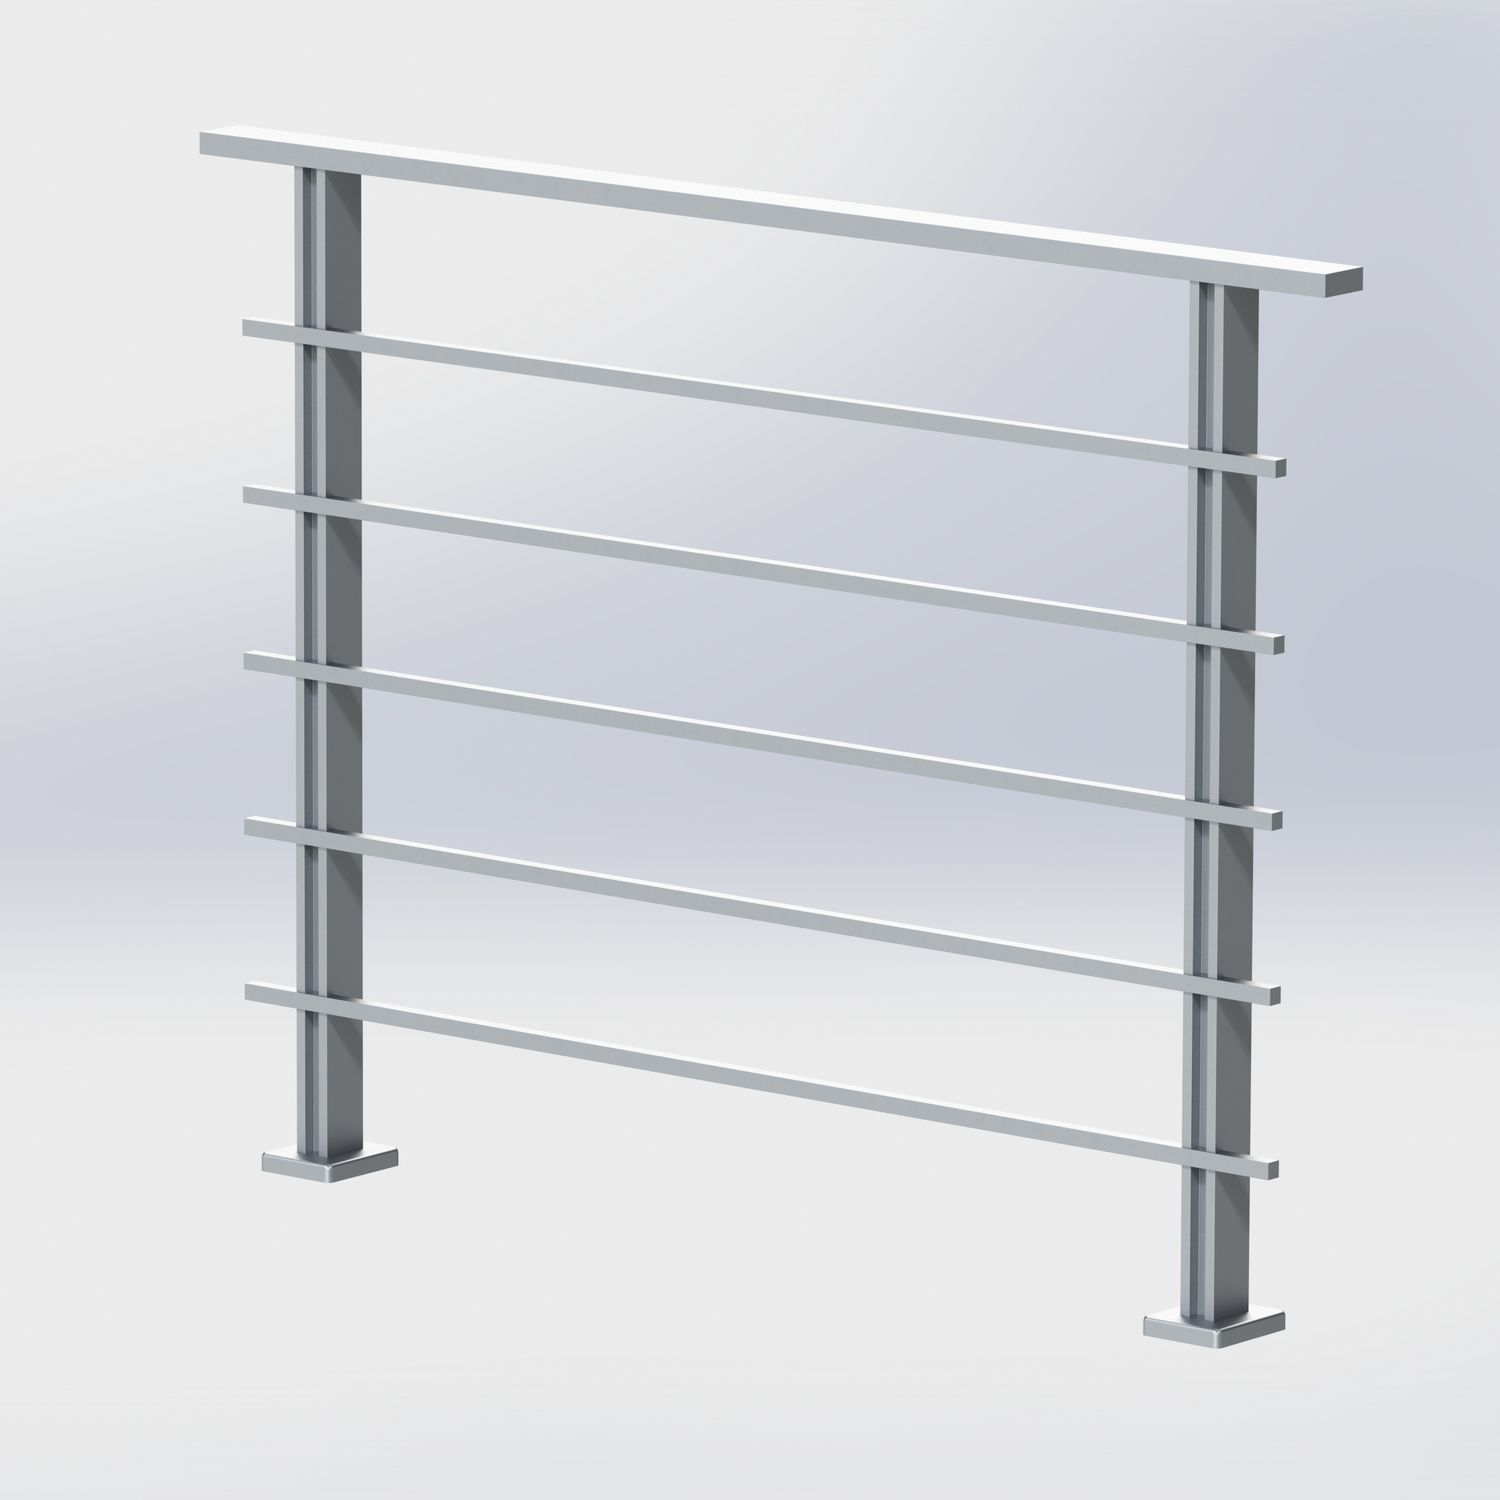 Aluminum Railing With Bars Outdoor For Balconies Ms 200